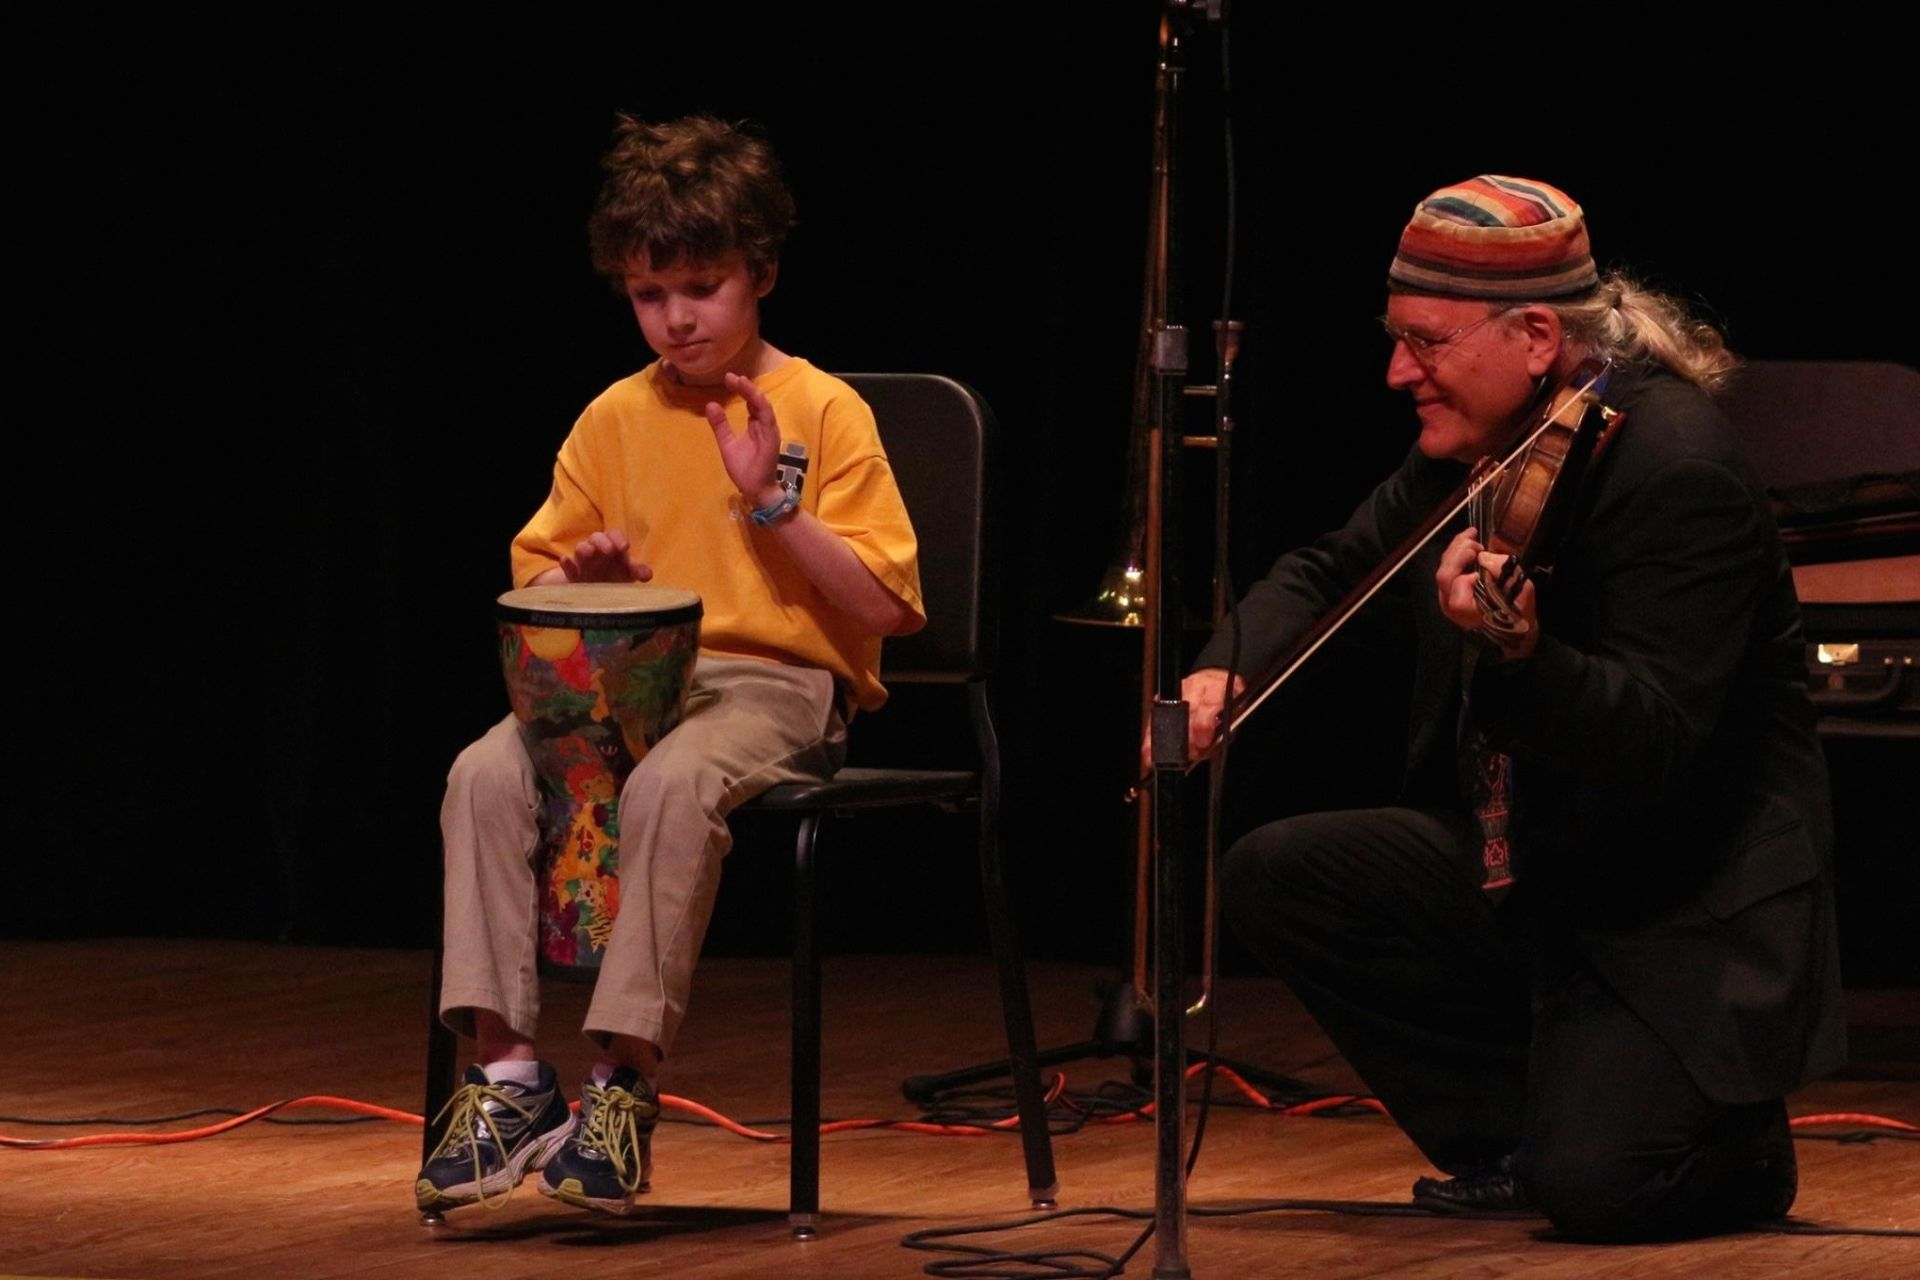 Yiddishe Cup, a Klezmer band, performs at the Shaker Campus